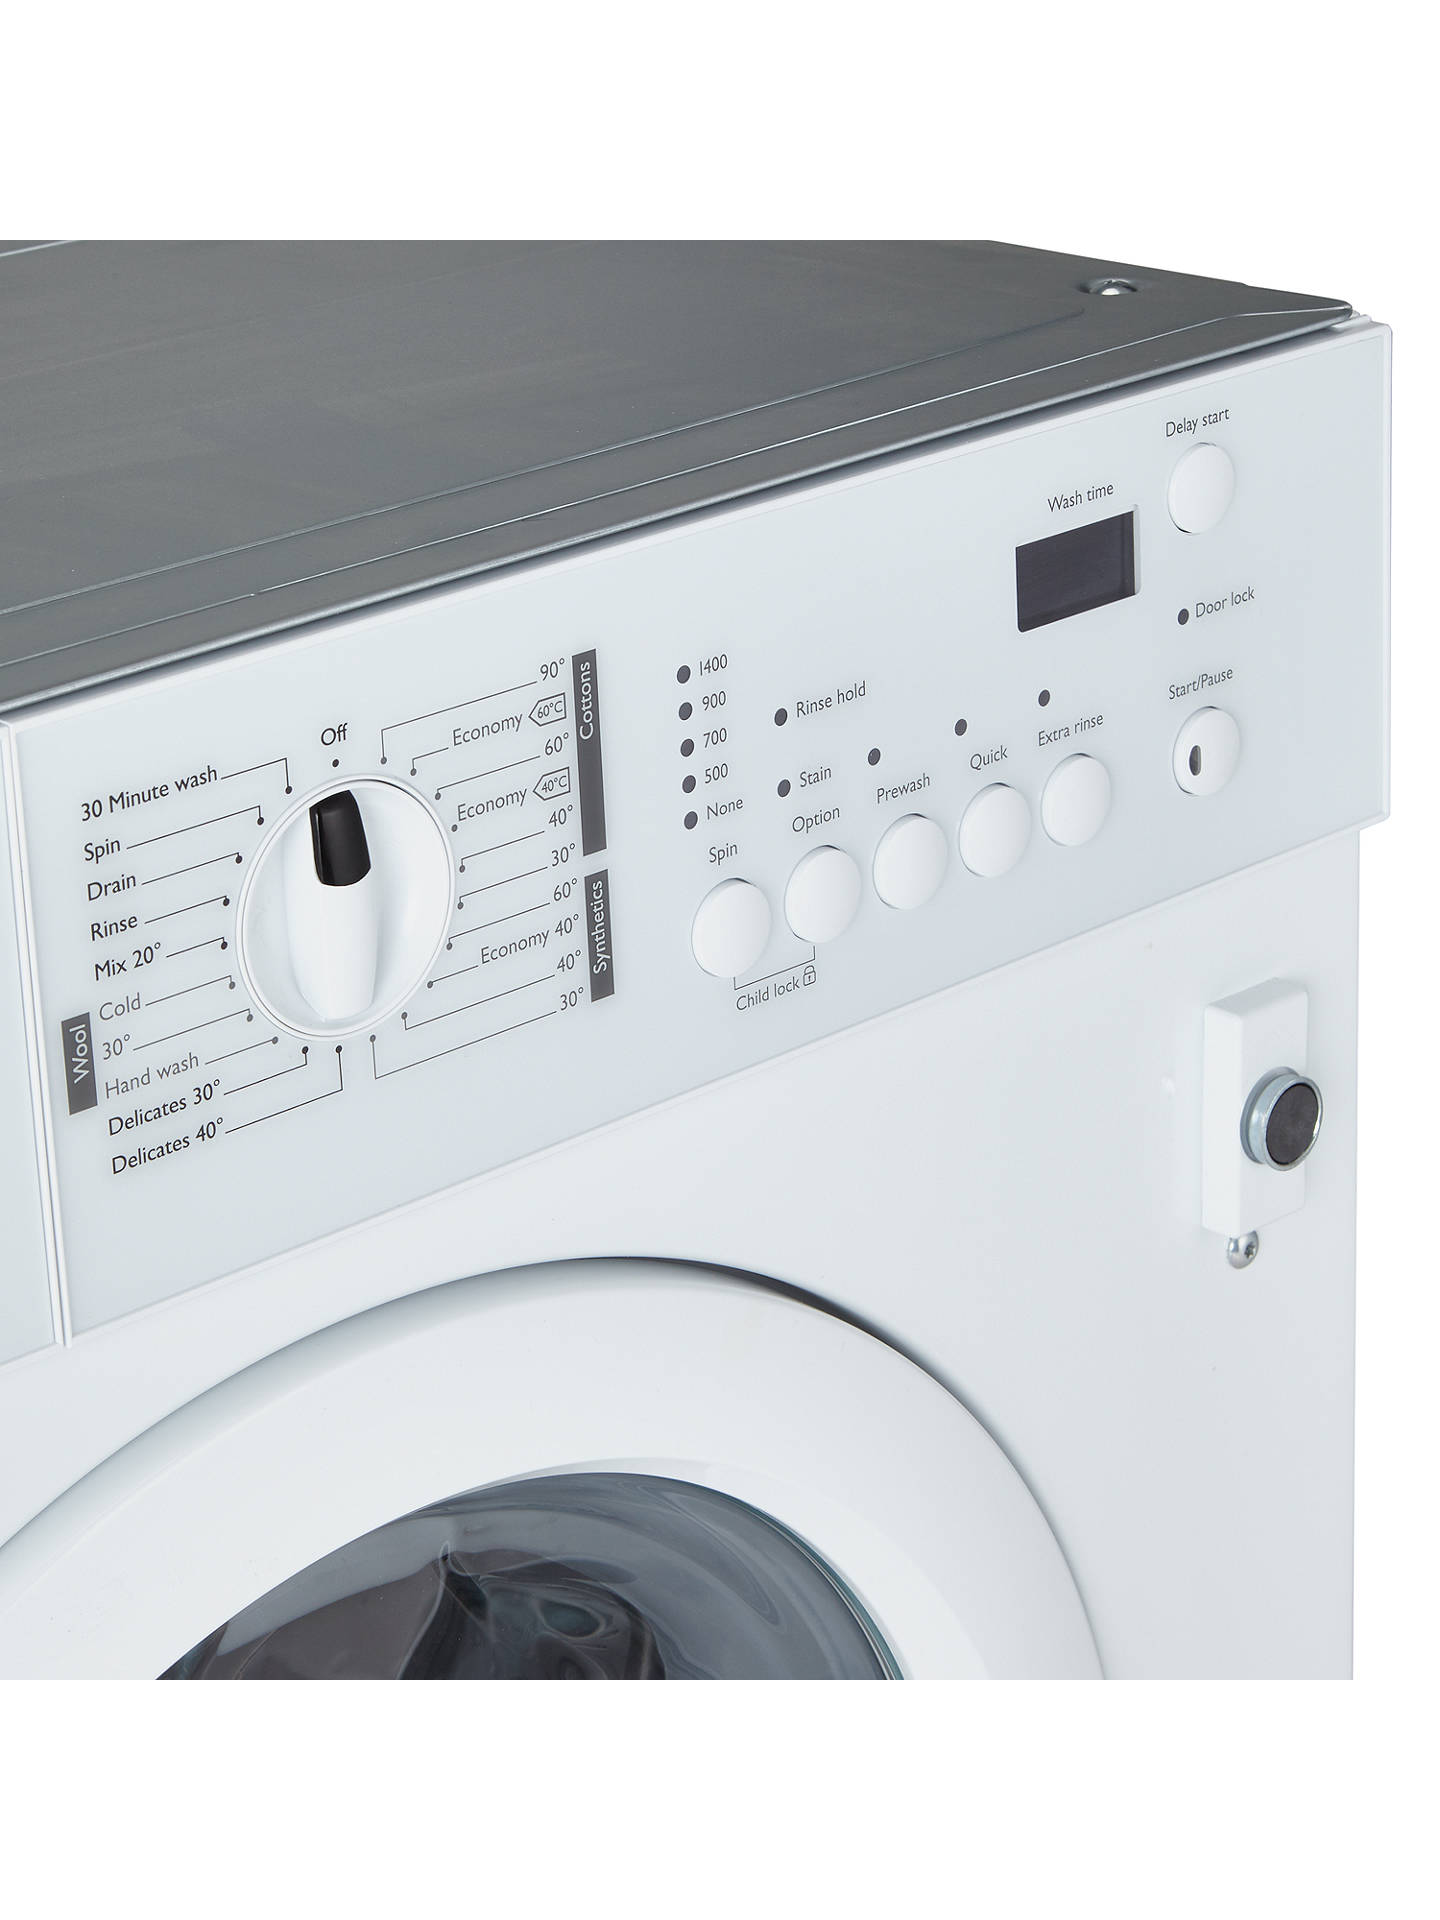 BuyJohn Lewis & Partners JLBIWM1403 Integrated Washing Machine, 7kg Load, A++ Energy Rating, 1400rpm Spin, White Online at johnlewis.com